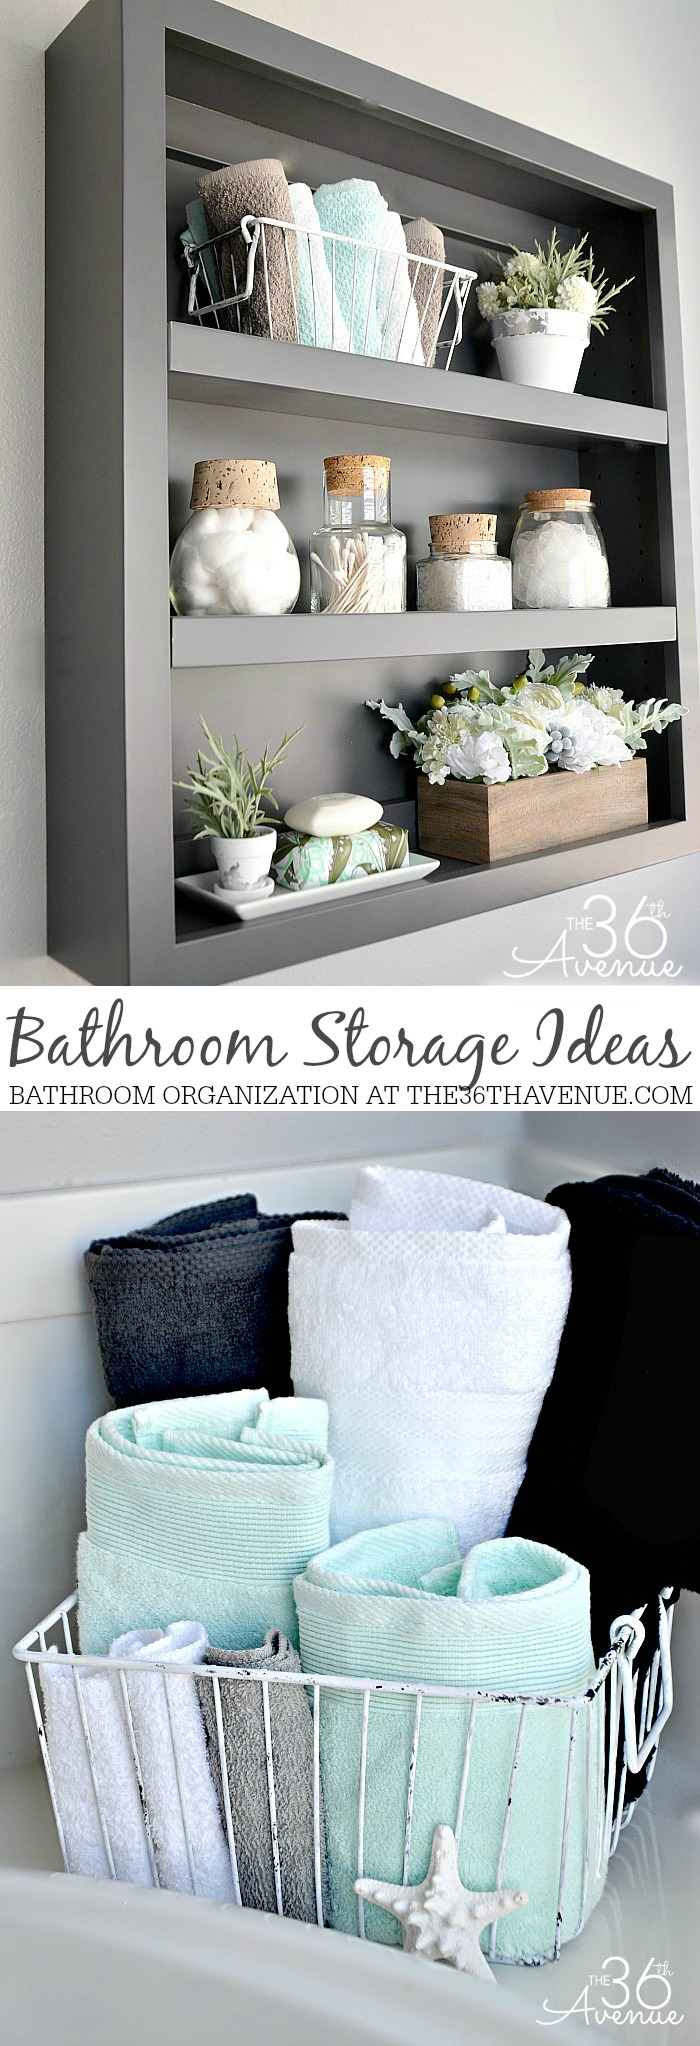 Best The 36Th Avenue Bathroom Storage Ideas The 36Th Avenue This Month